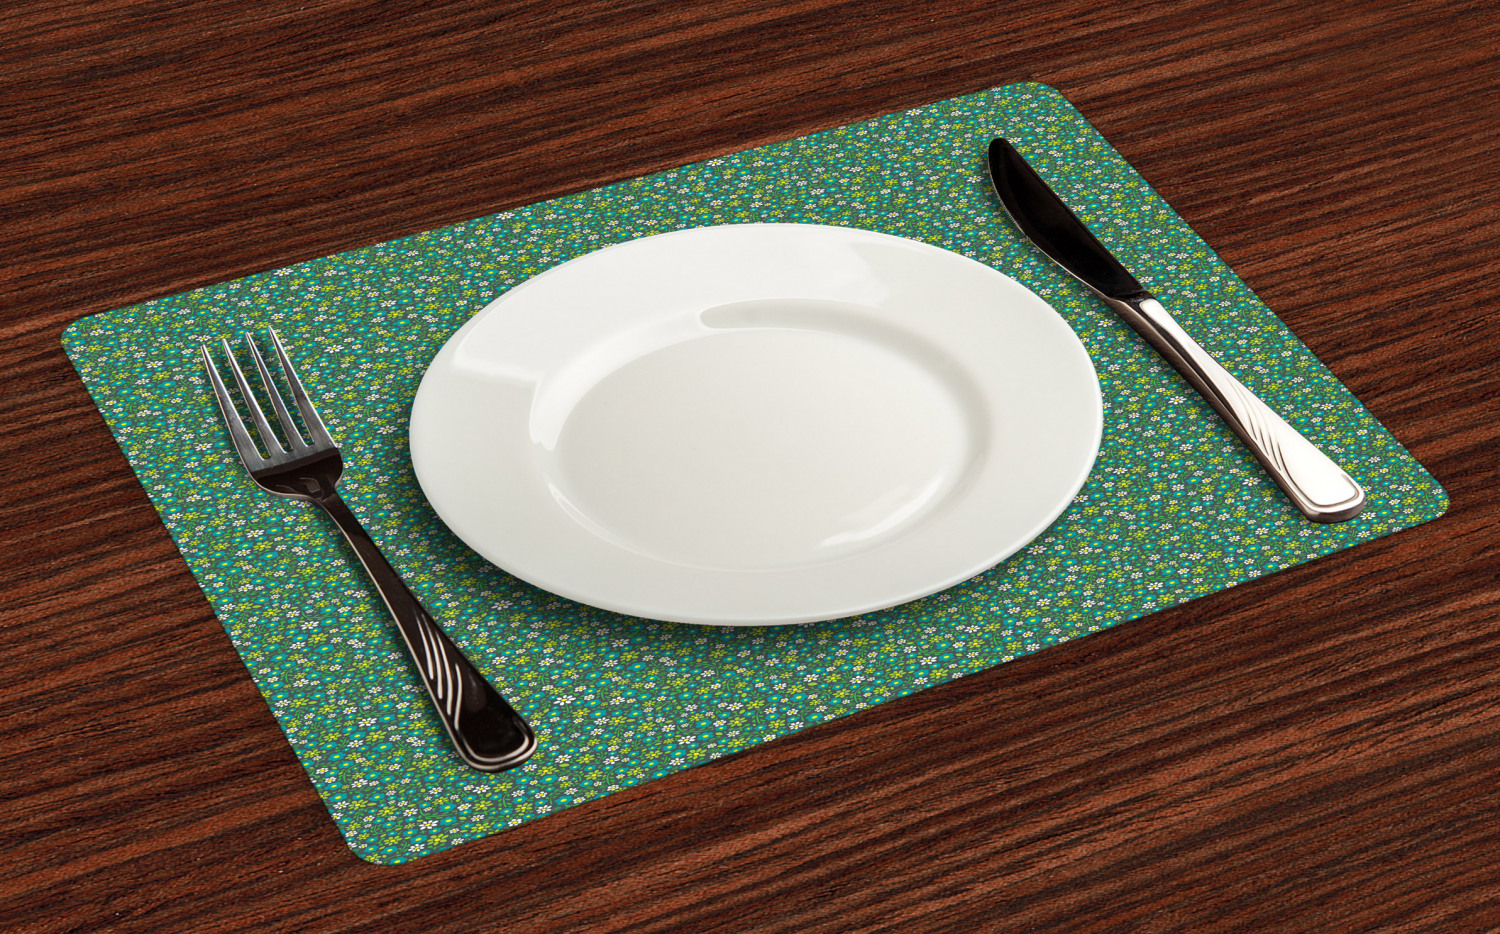 Ambesonne-Flower-Pattern-Placemat-Set-of-4-Fabric-Place-Mats-for-Table-Decor thumbnail 65